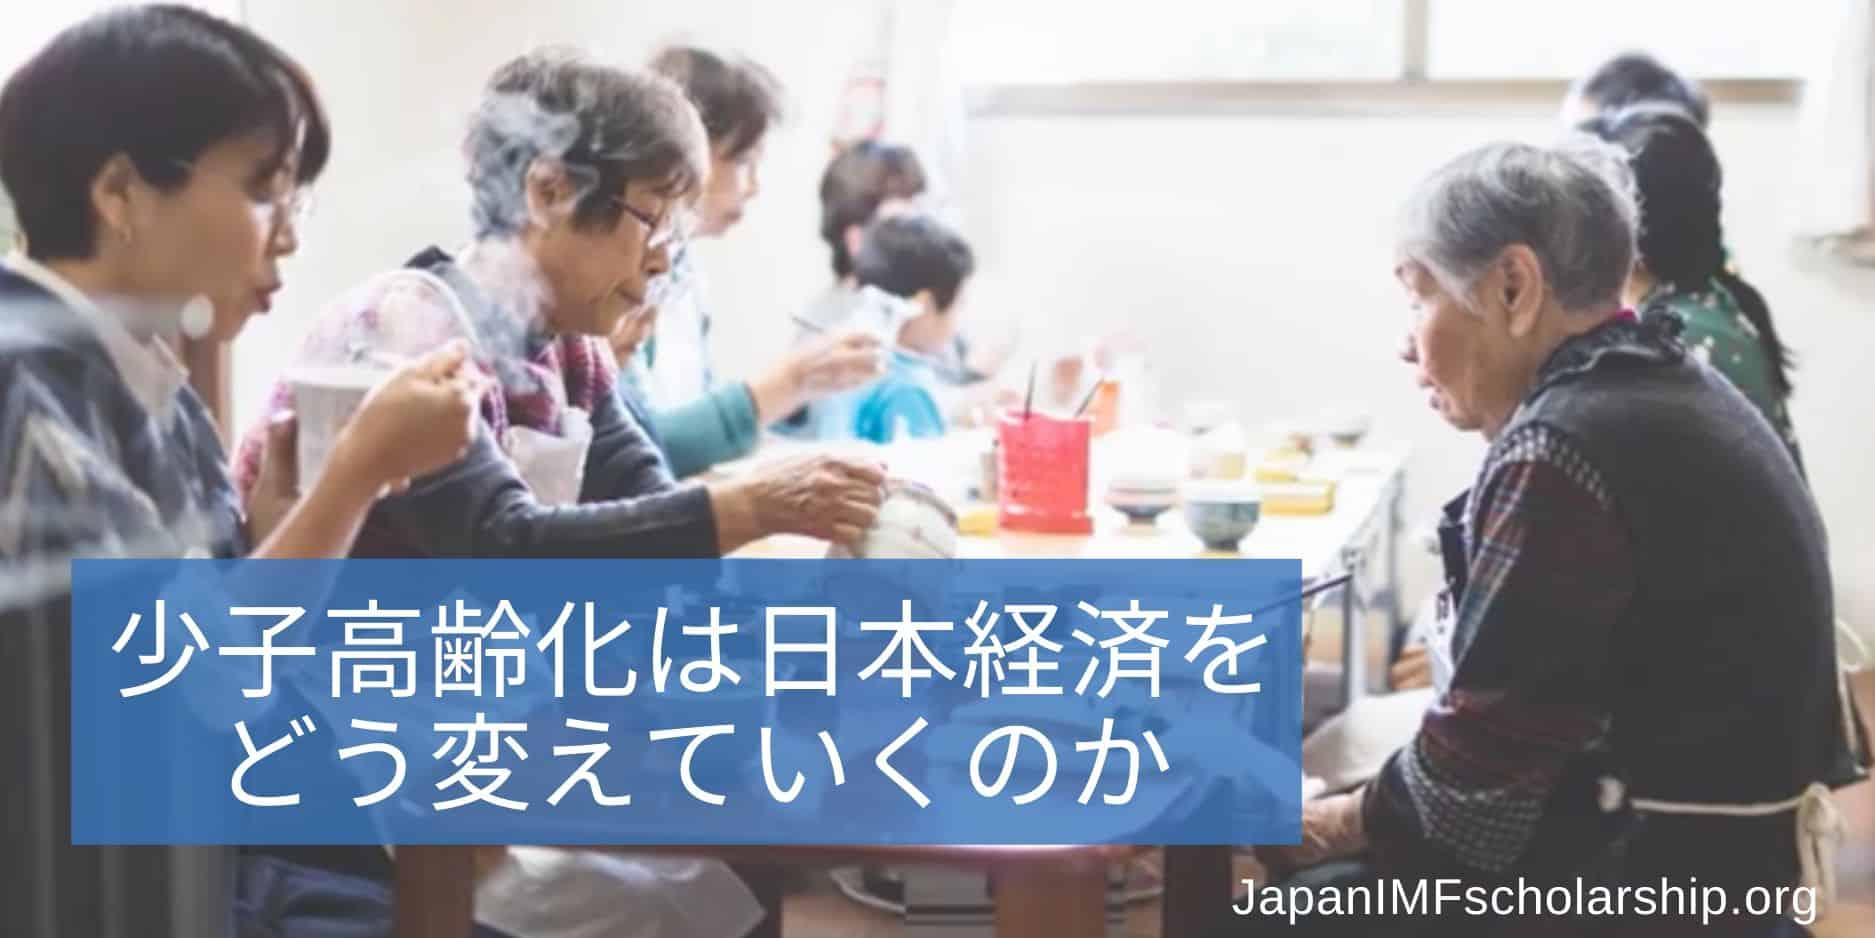 jisp web-fb imf news about japan demographic shift opens door to reforms